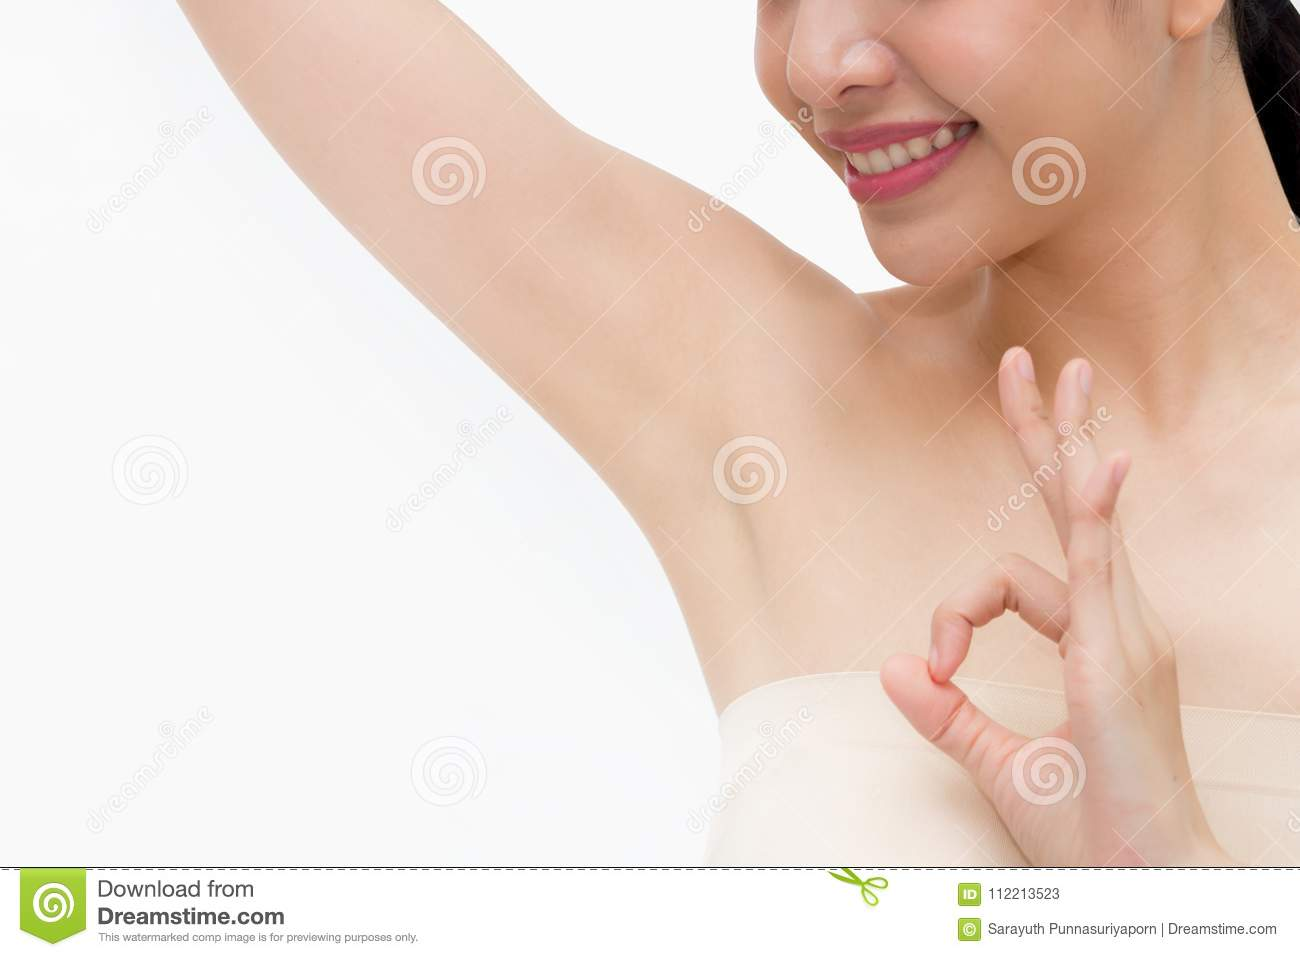 Young Asian woman lifting hands up to show off clean and hygienic armpits or underarms and giving okay sign